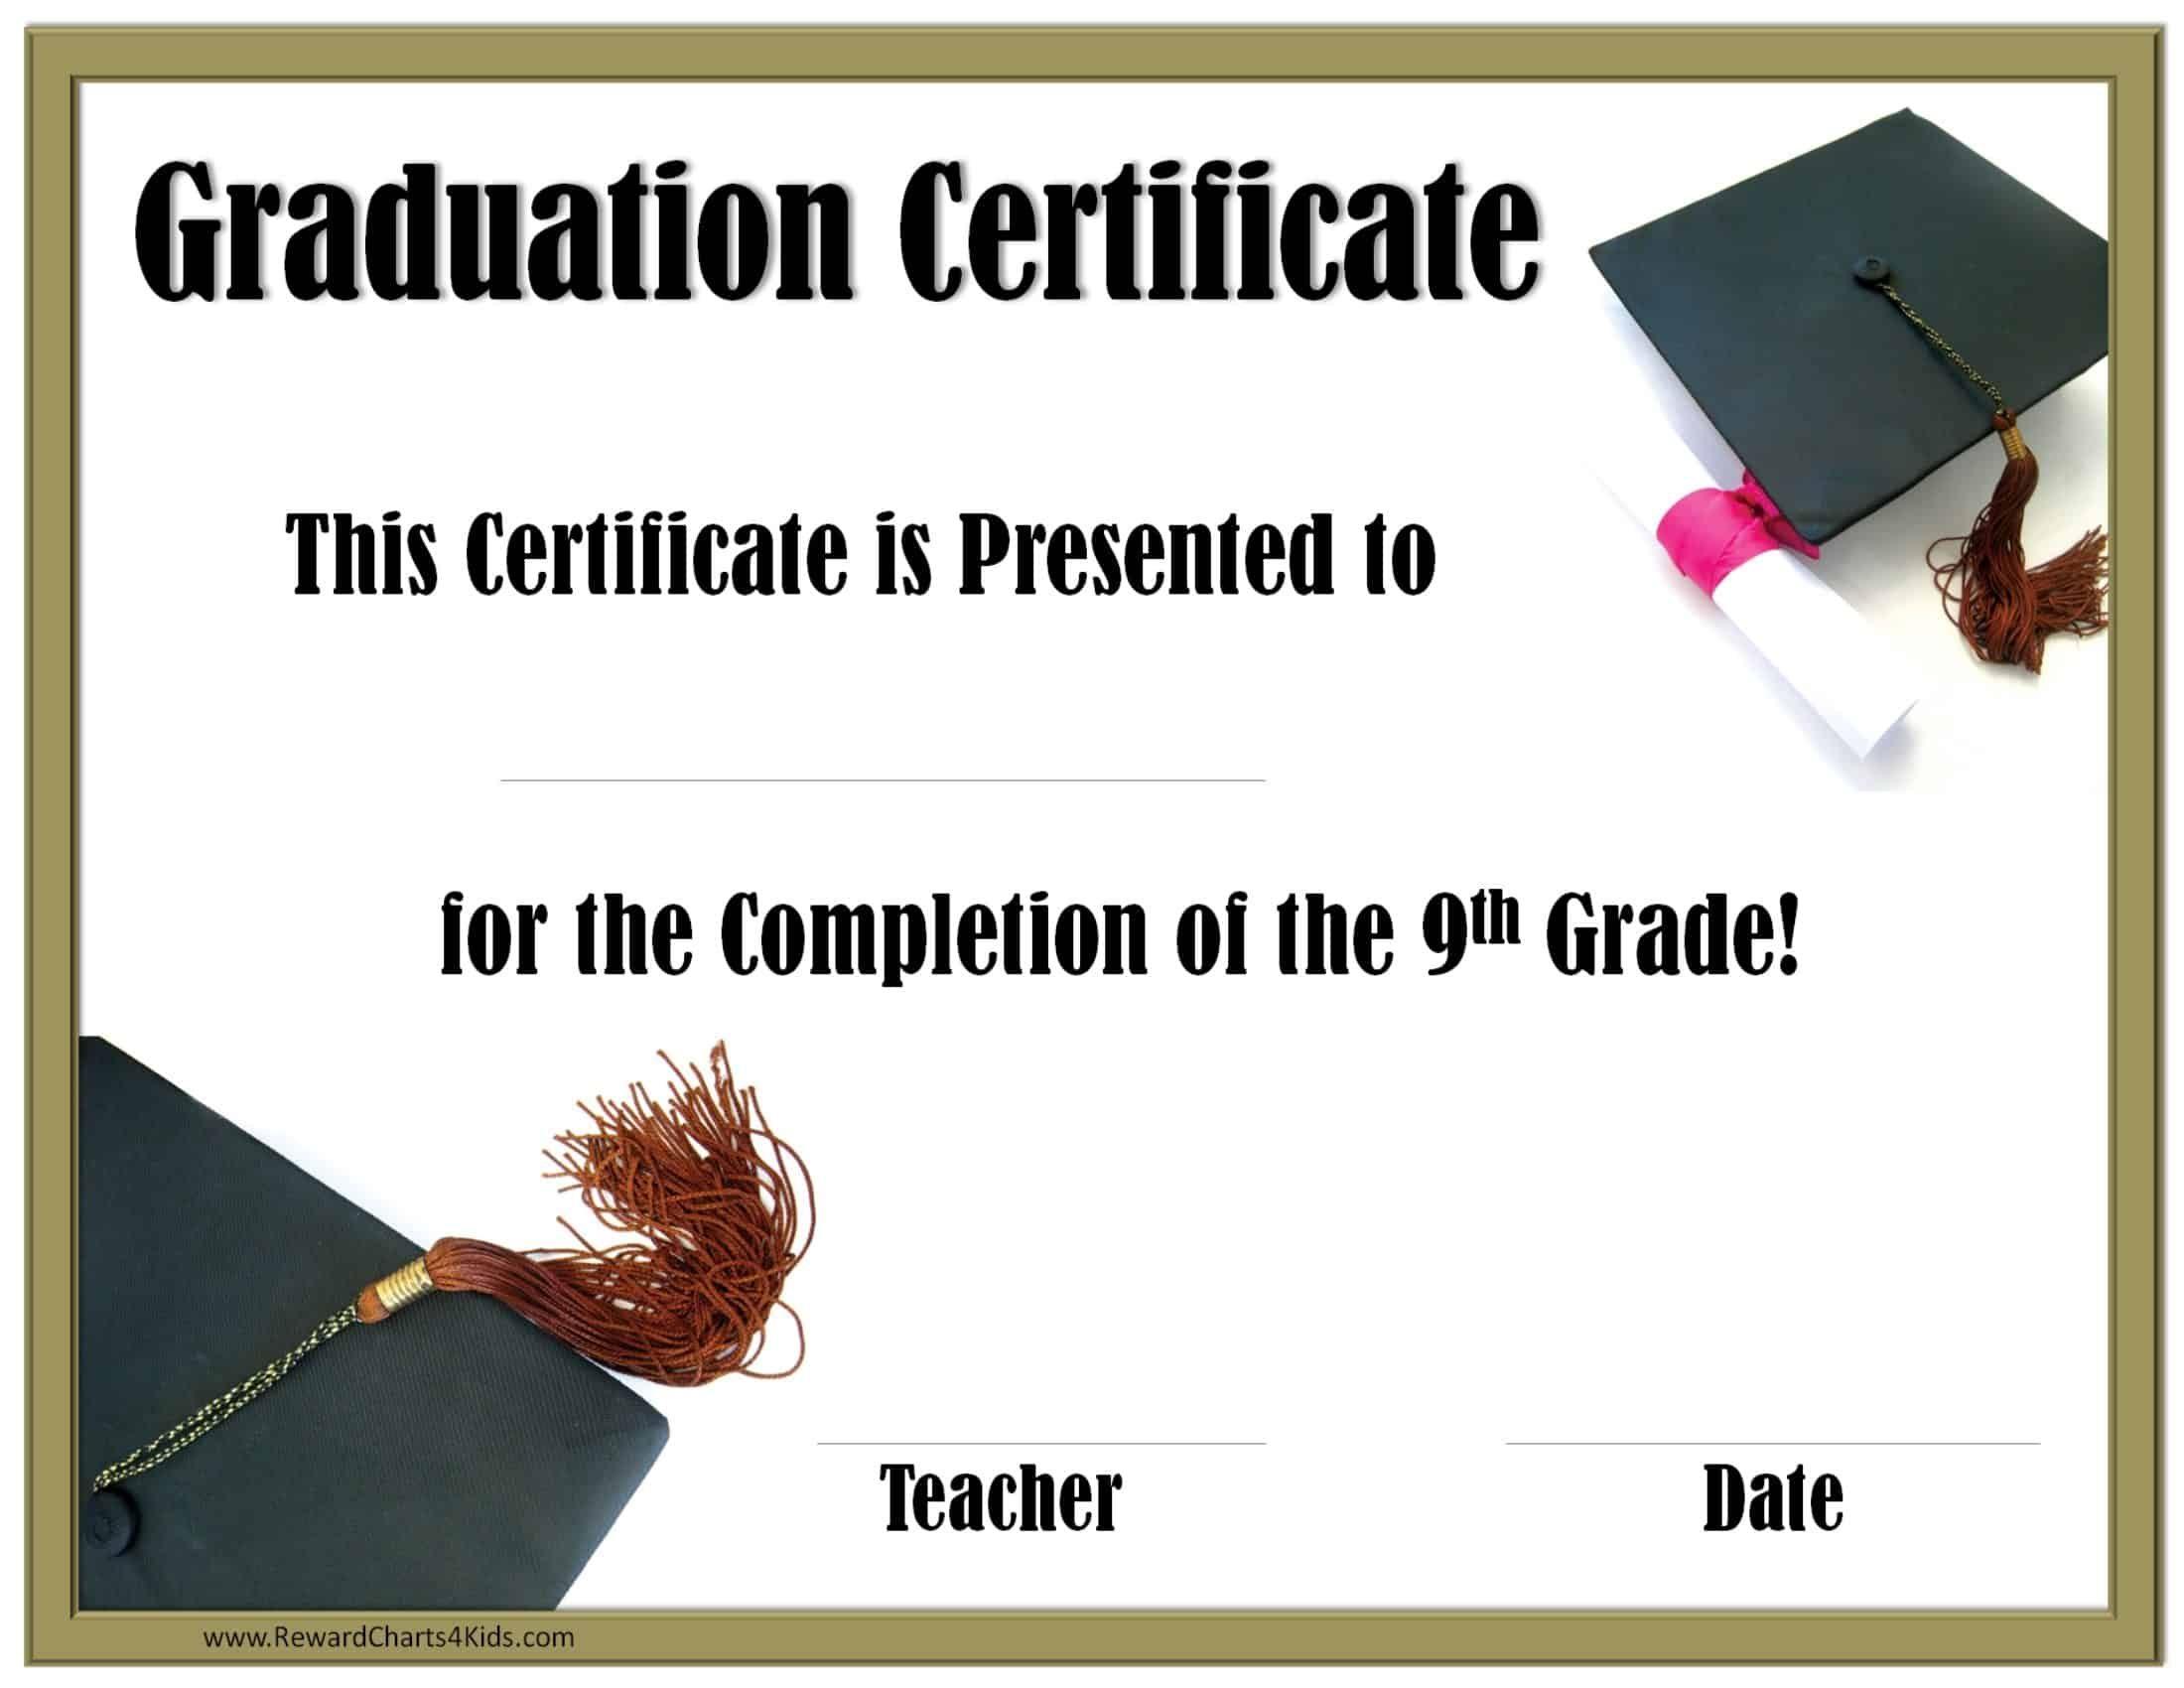 School Graduation Certificates | Customize online with or ...